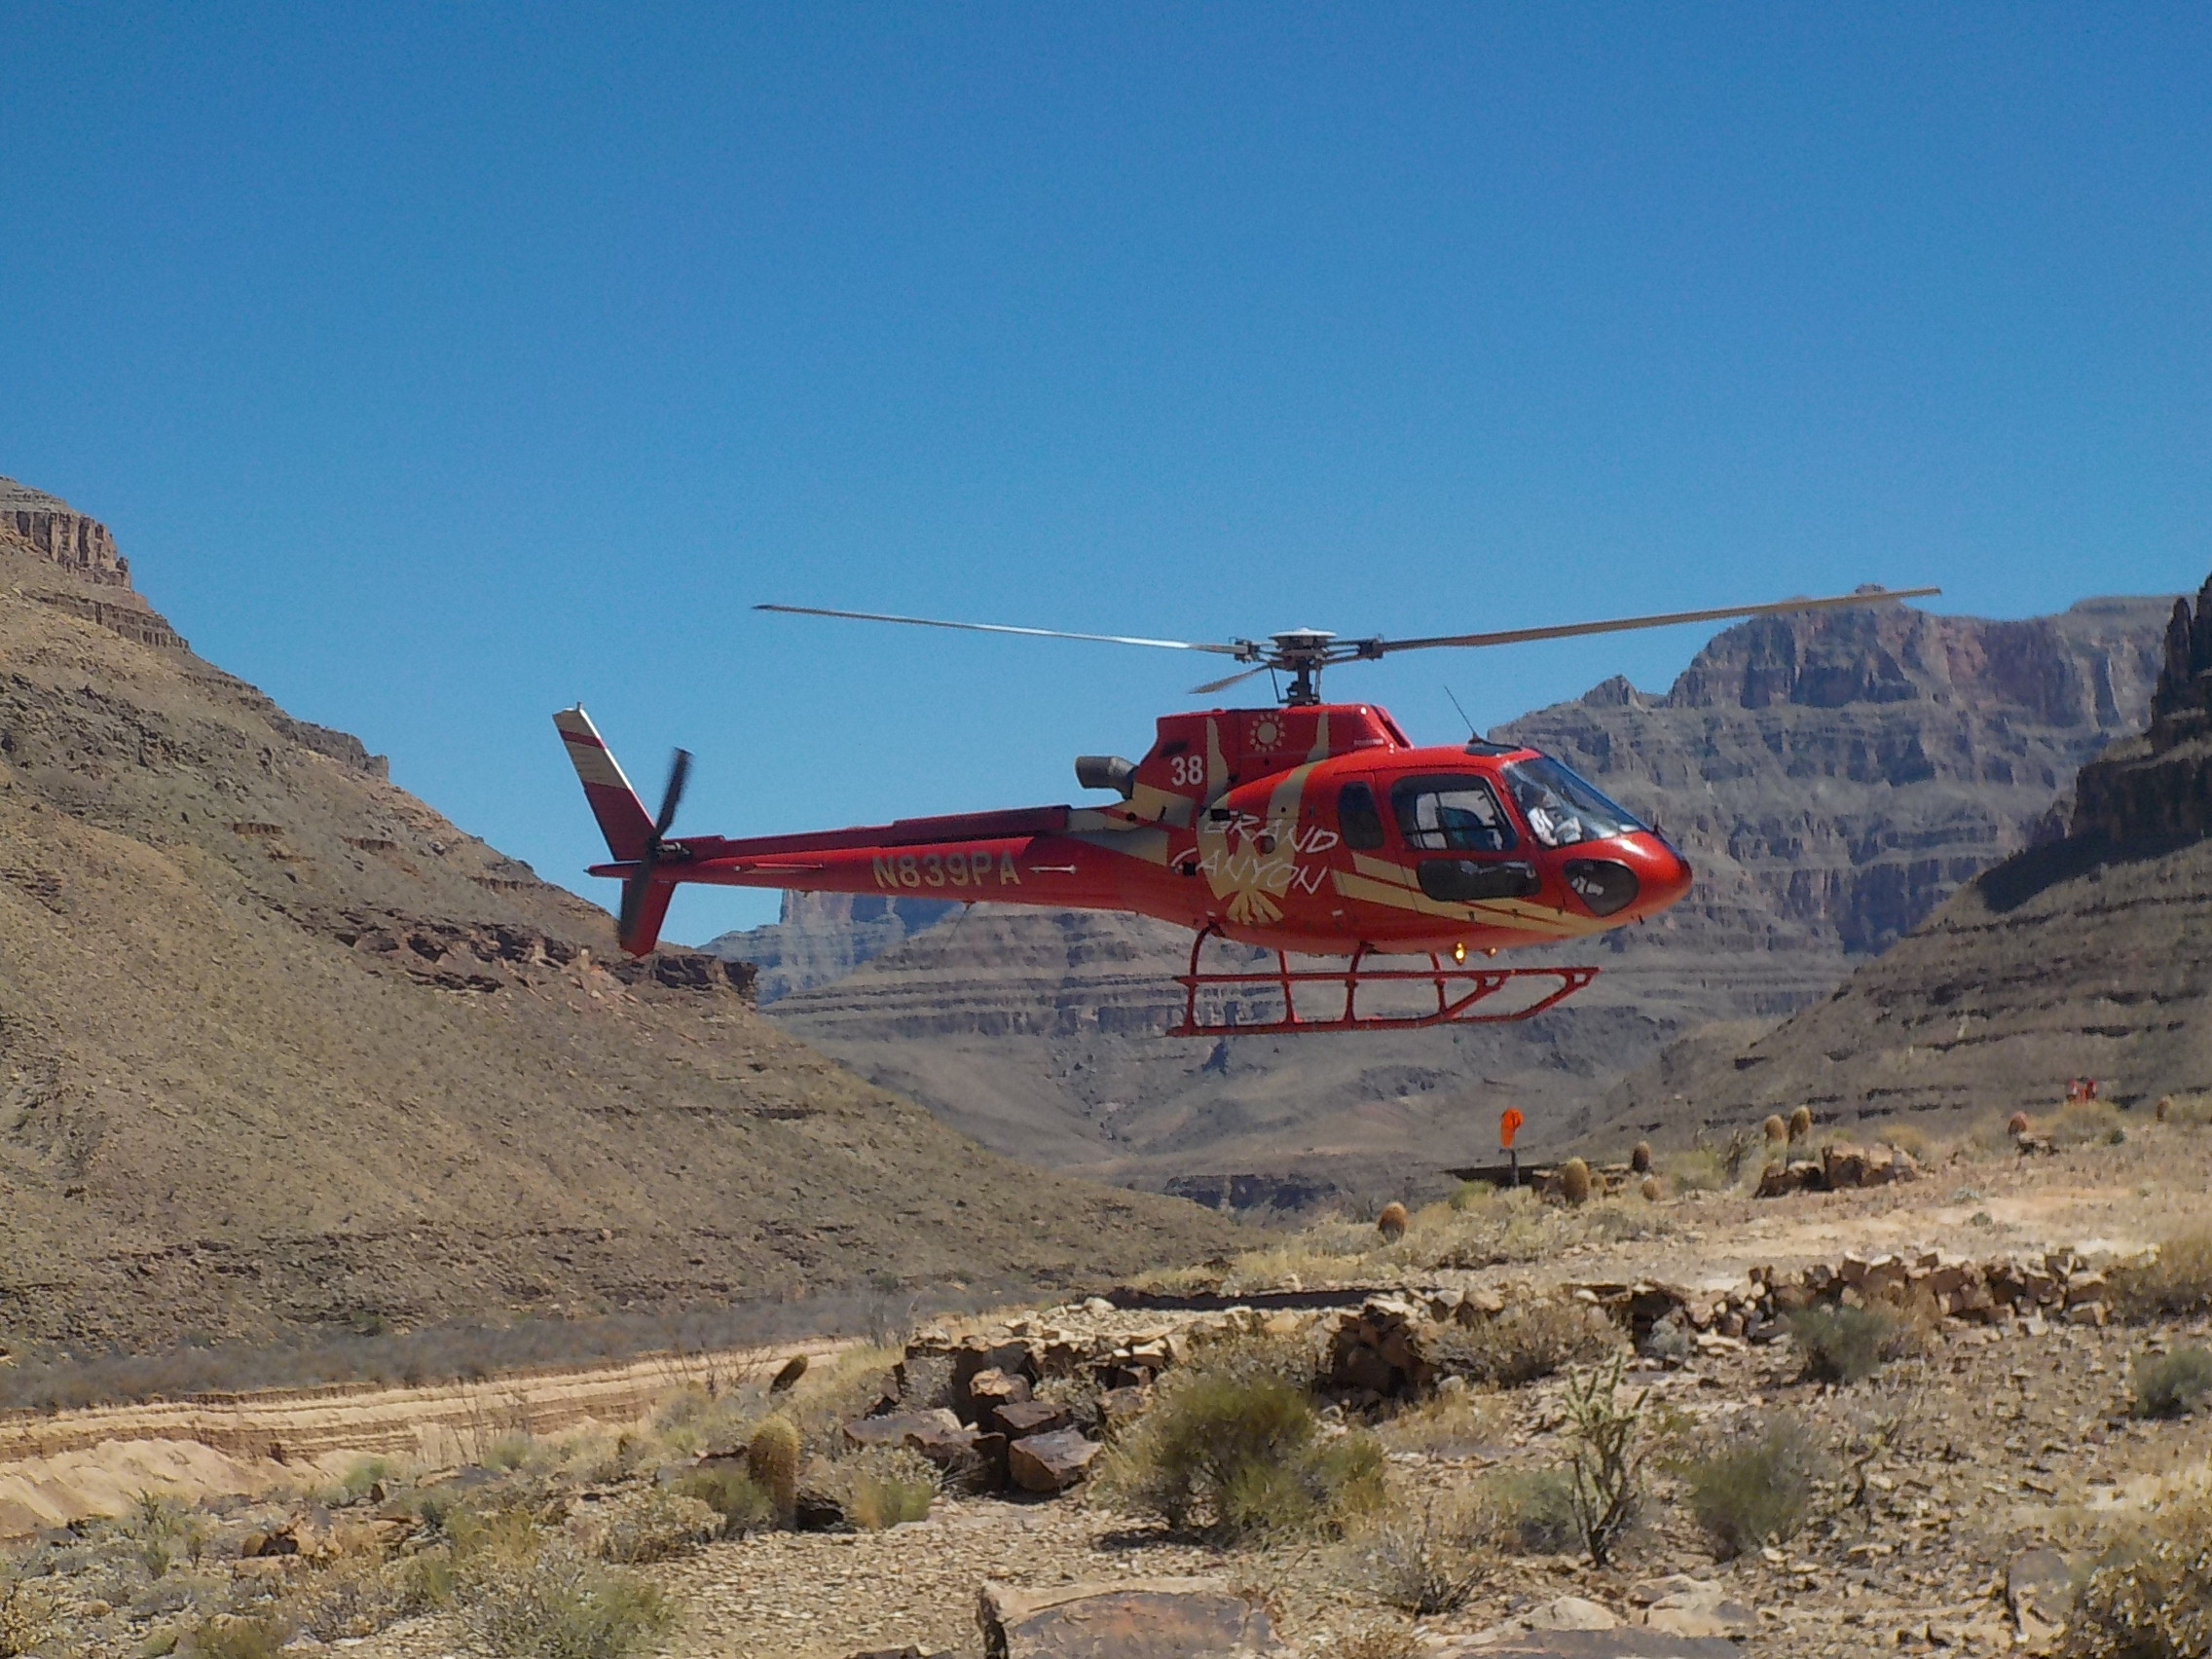 We rafted down the Colorado River for 36 miles, docked and rode a helicopter up, up and away to the airport.